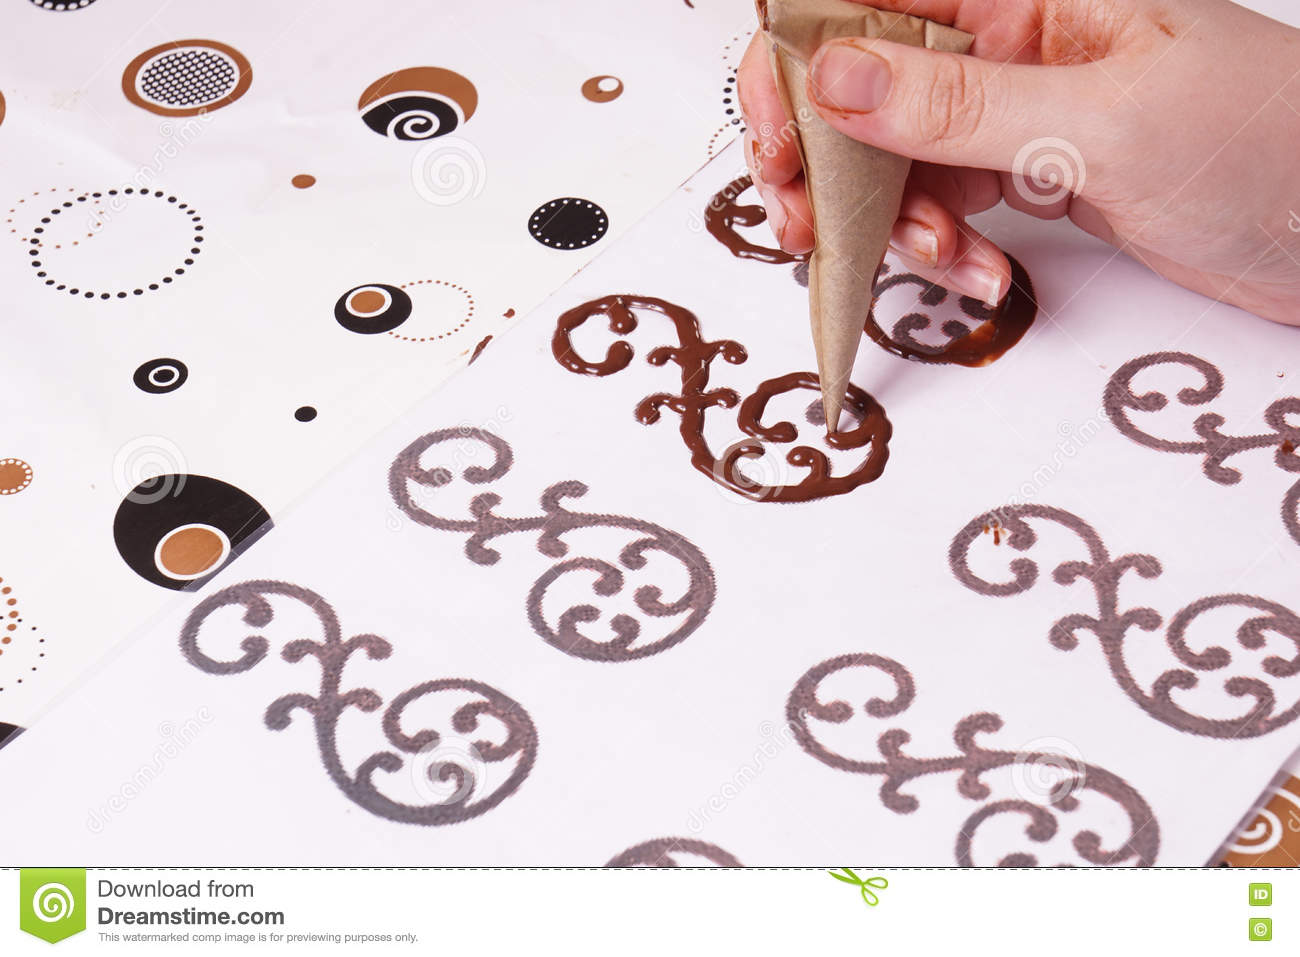 How To Make Long Chocolate Swirls For Cake Decoration